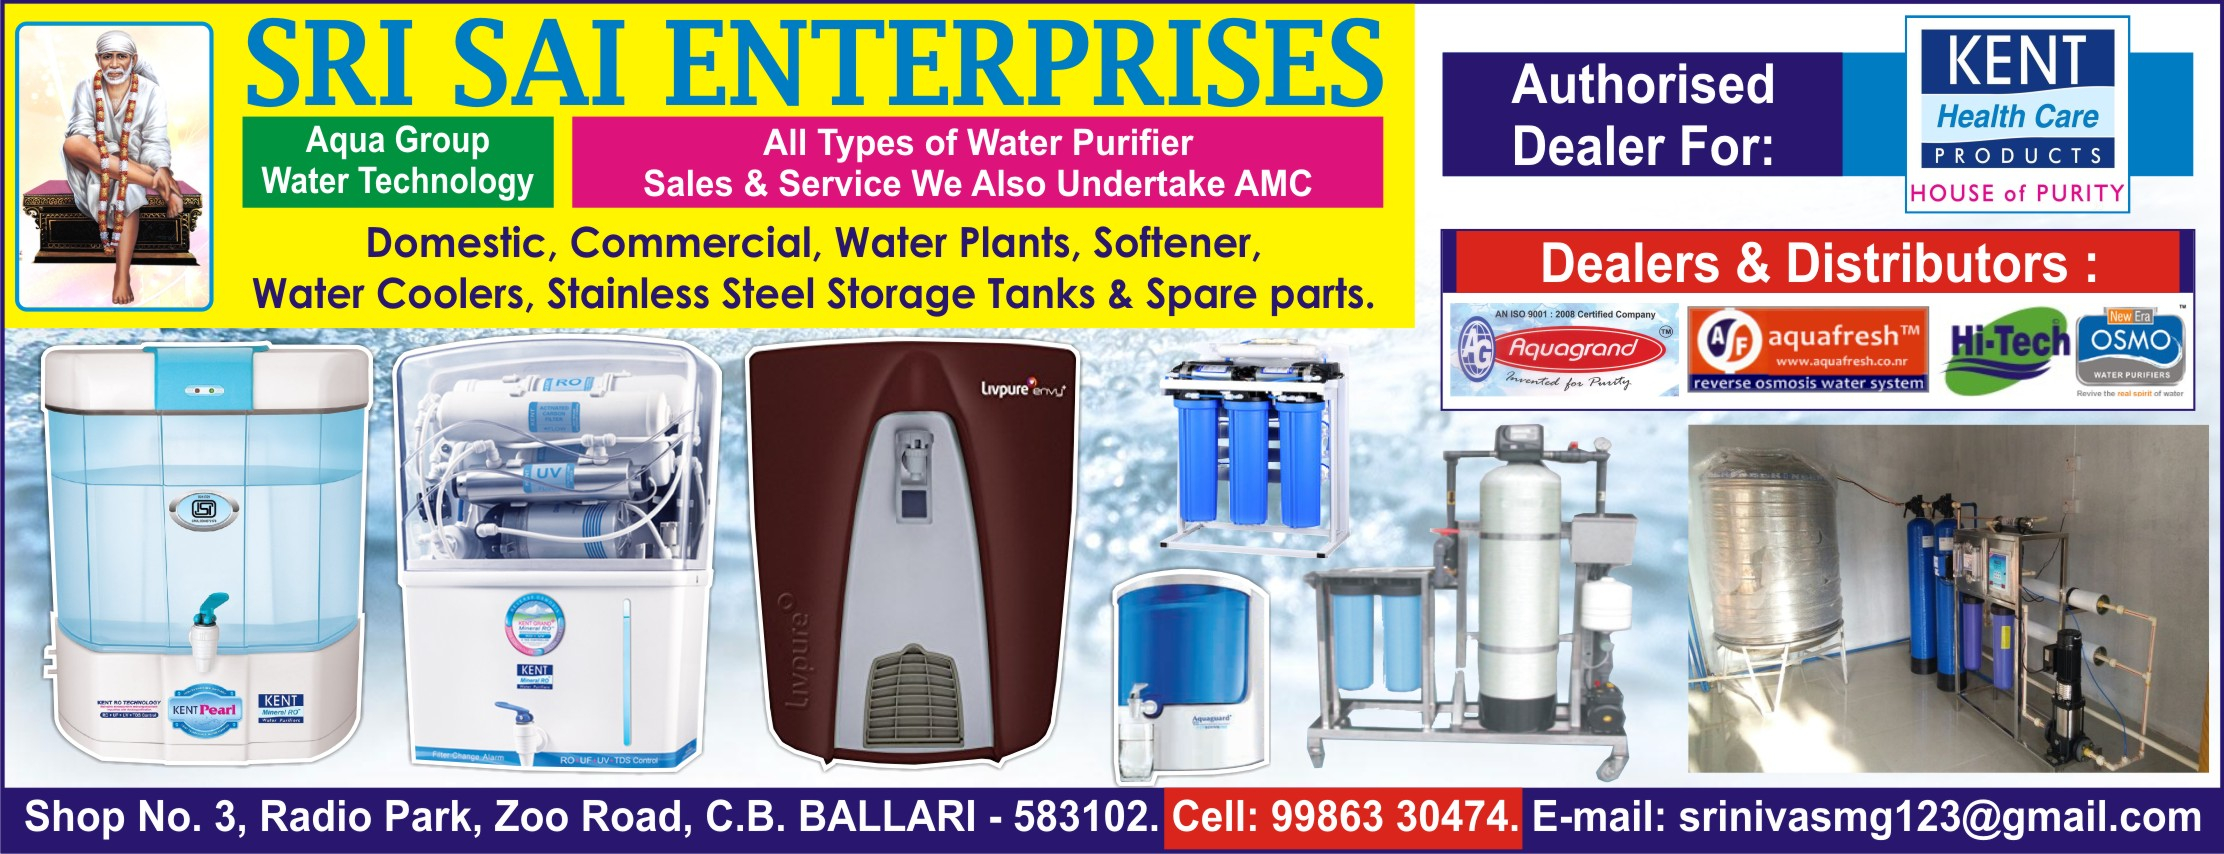 Sri Sai Enterprises